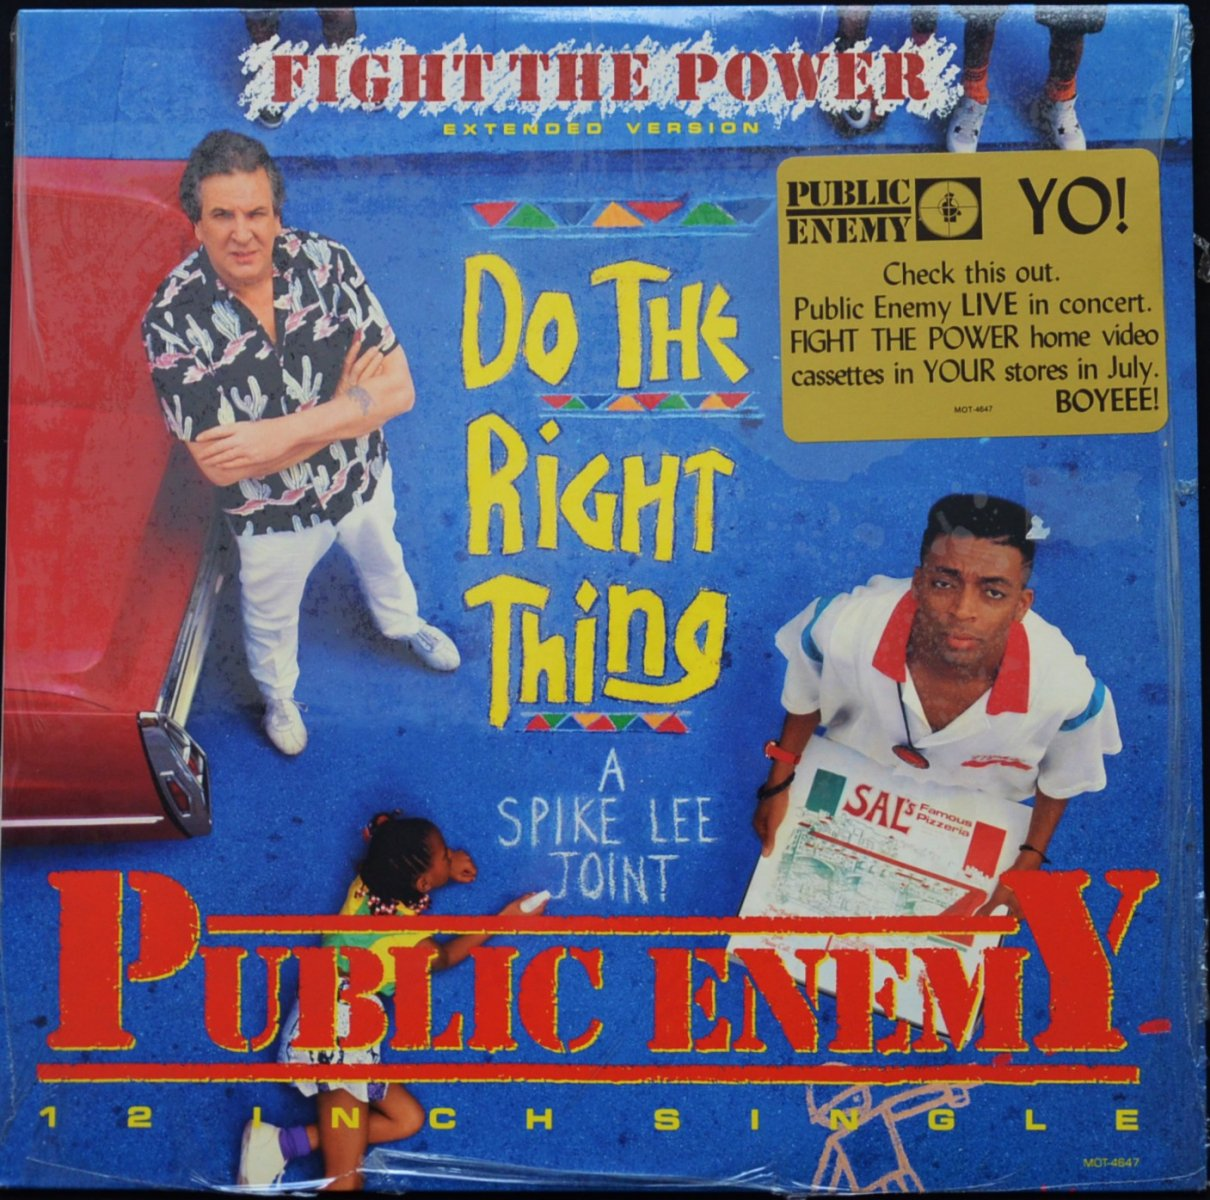 PUBLIC ENEMY ‎/ FIGHT THE POWER (EXTENDED VERSION) (12